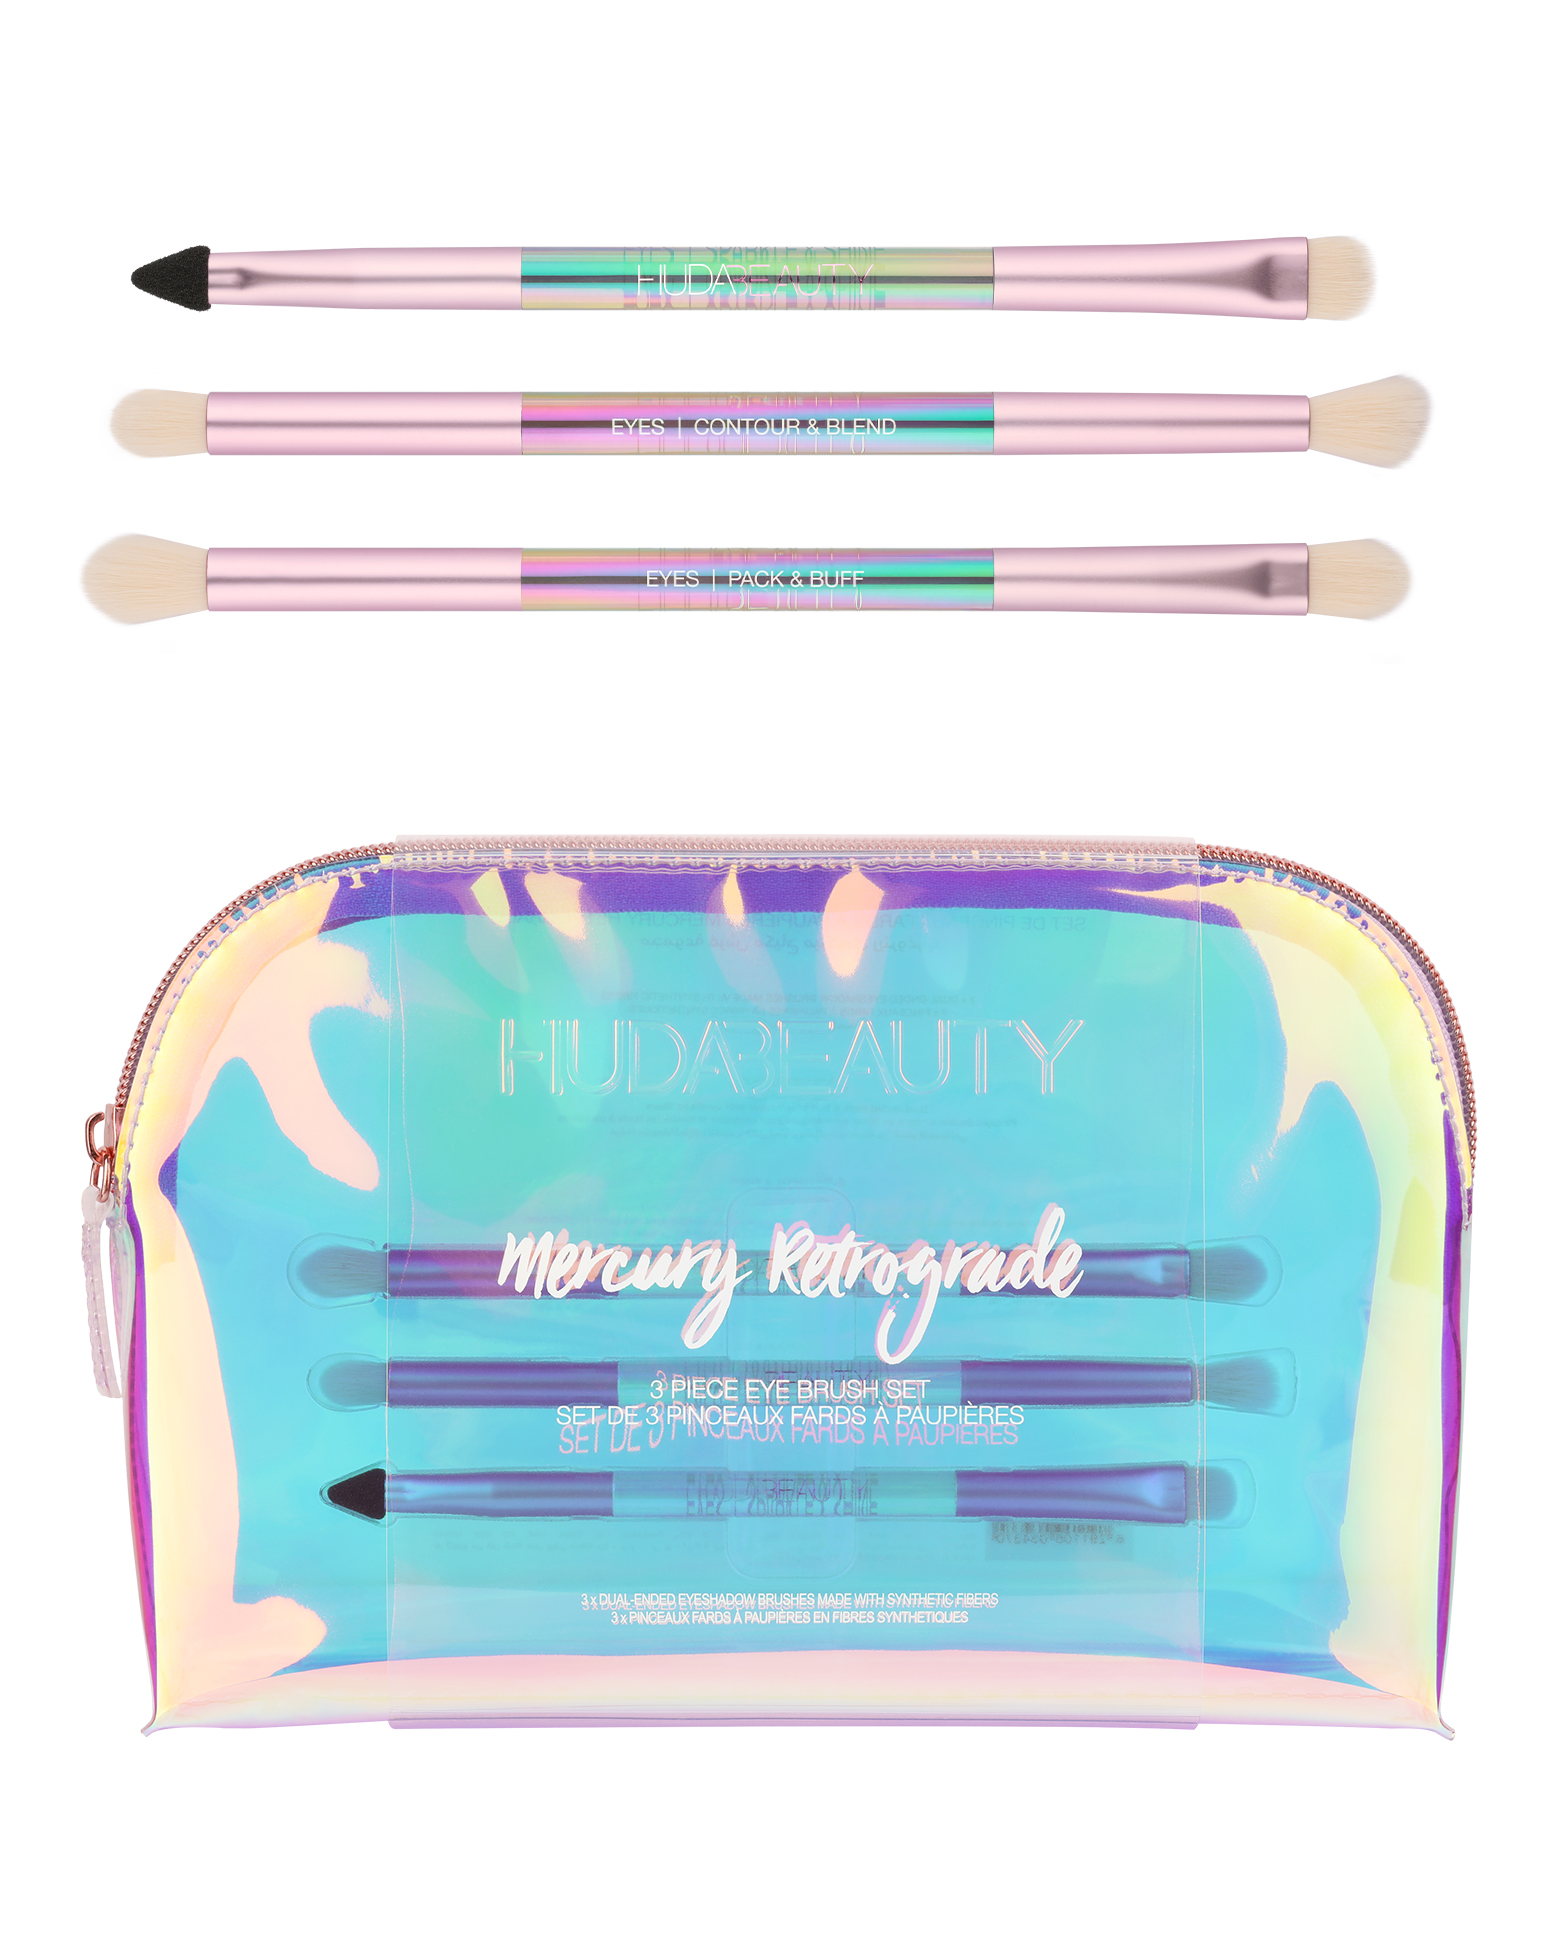 Mercury Retrograde Brush Kit by Huda Beauty